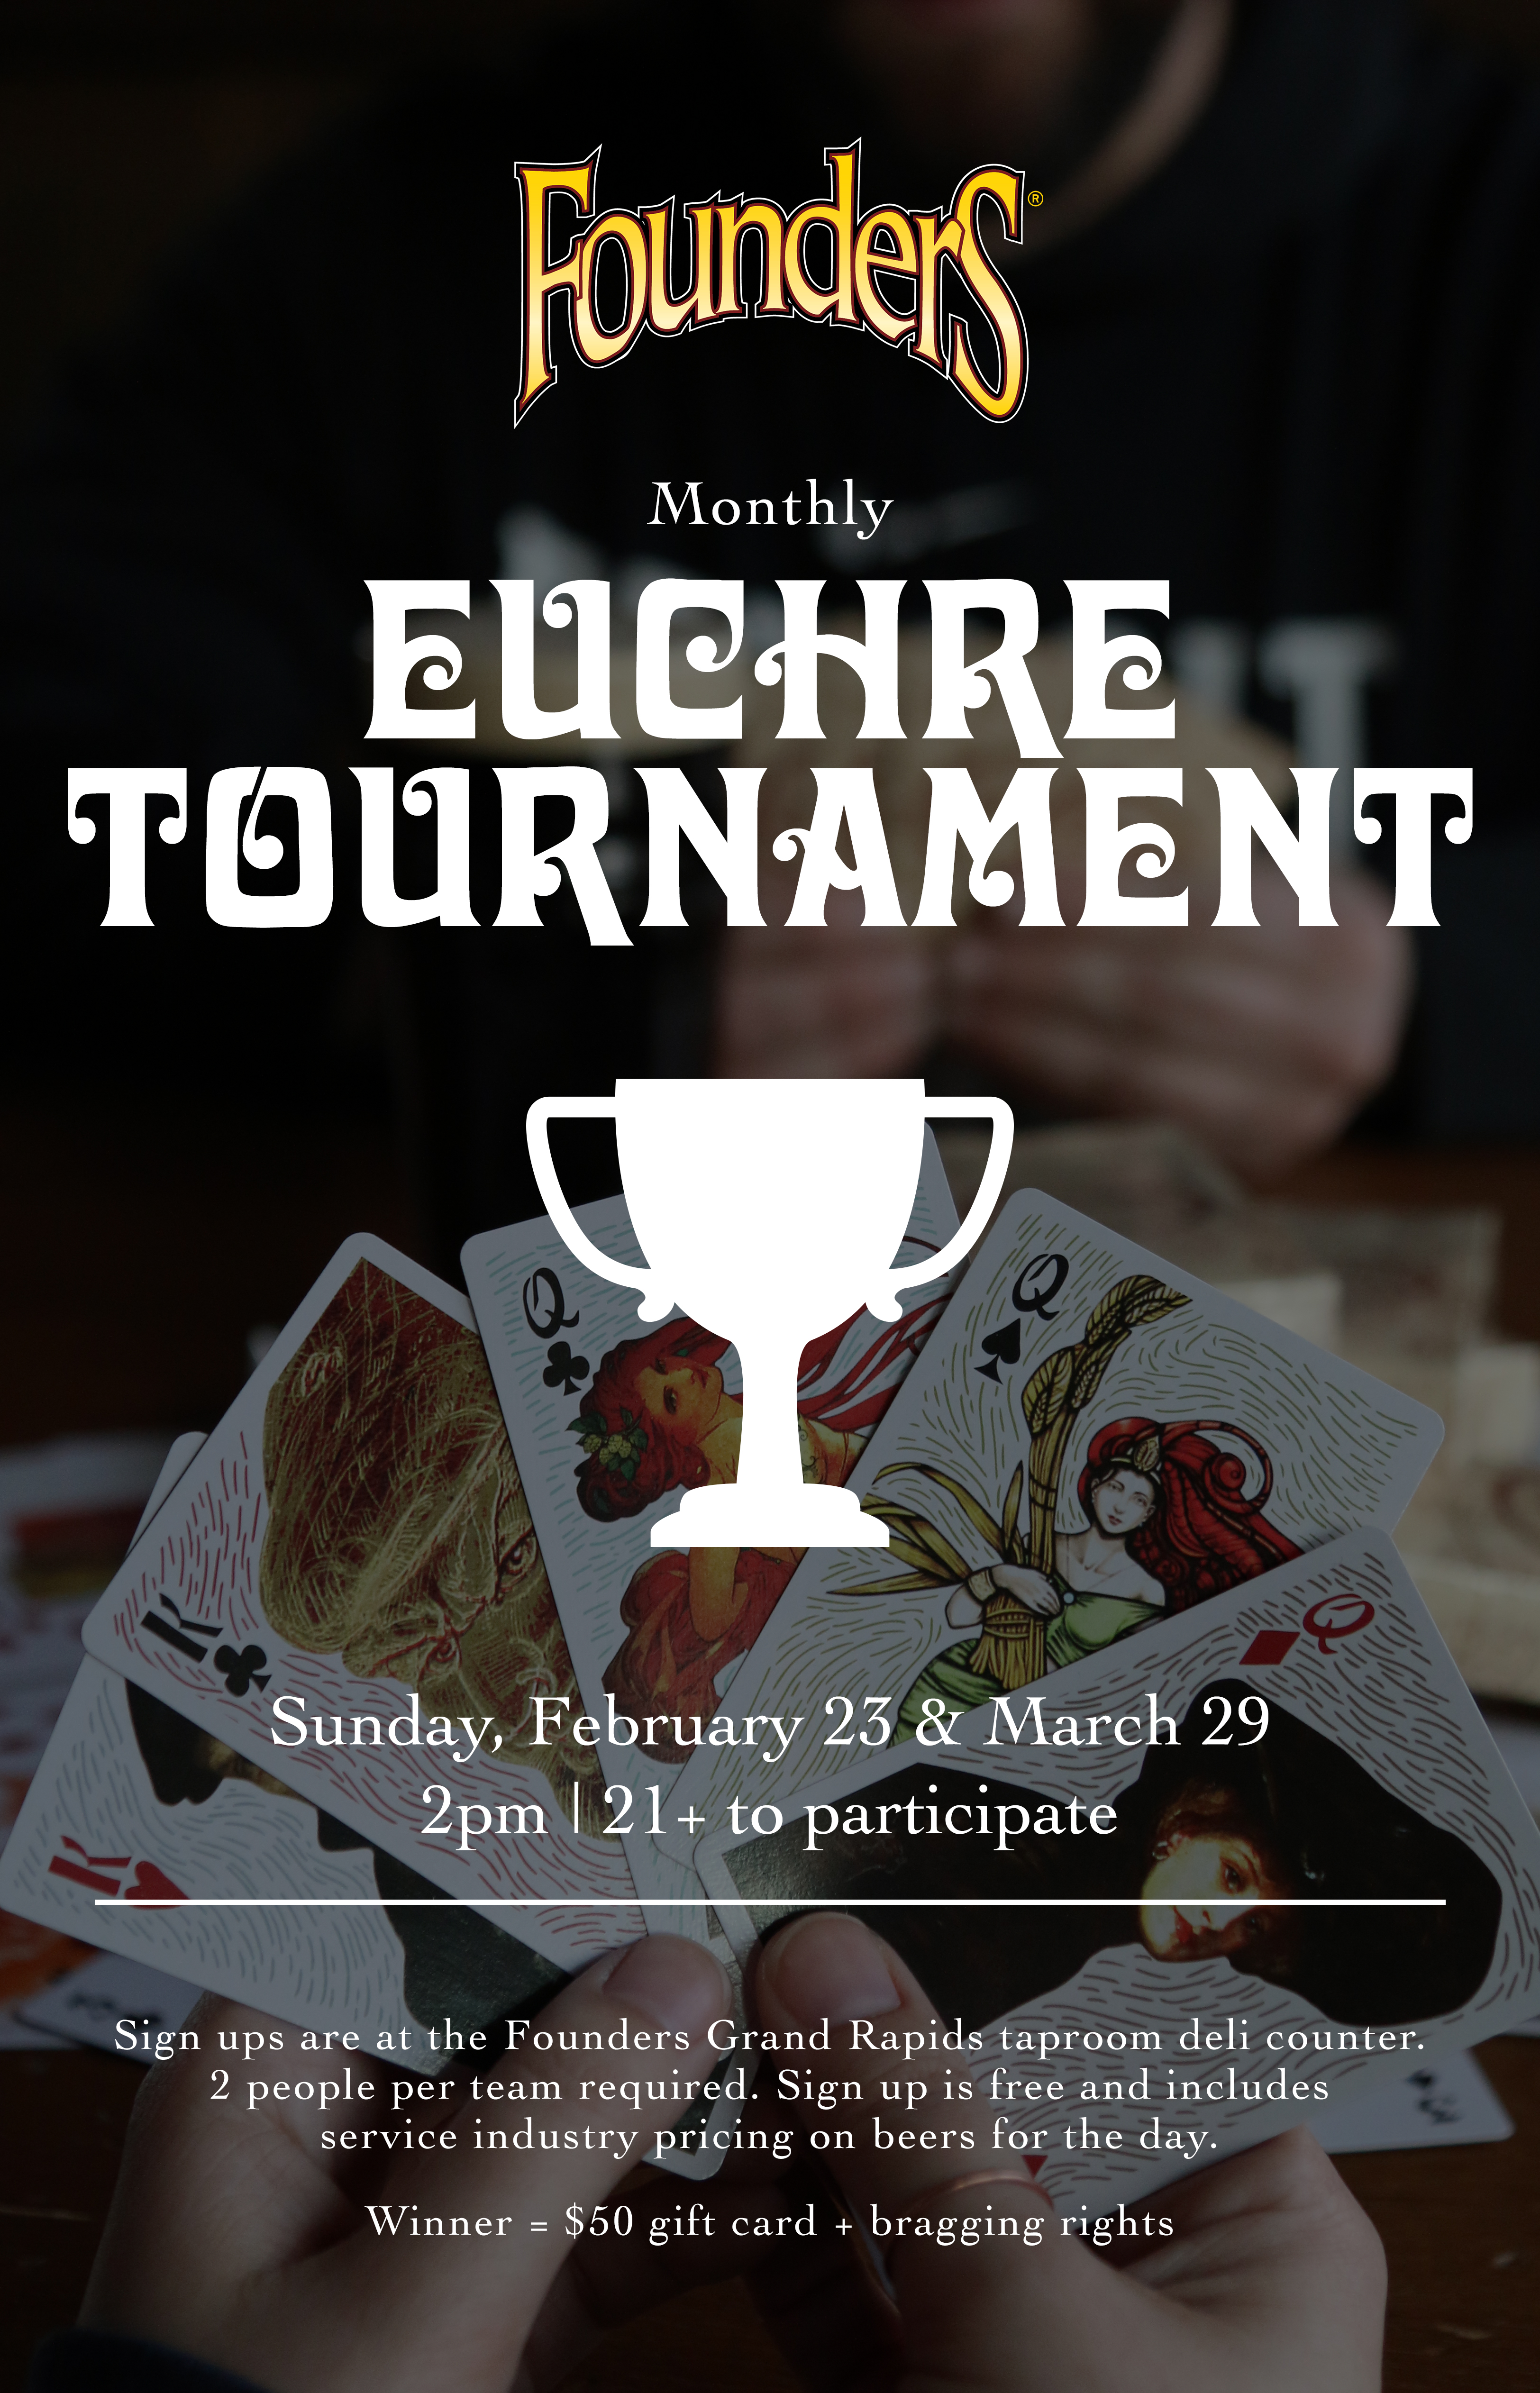 Monthly Euchre Tournament event poster